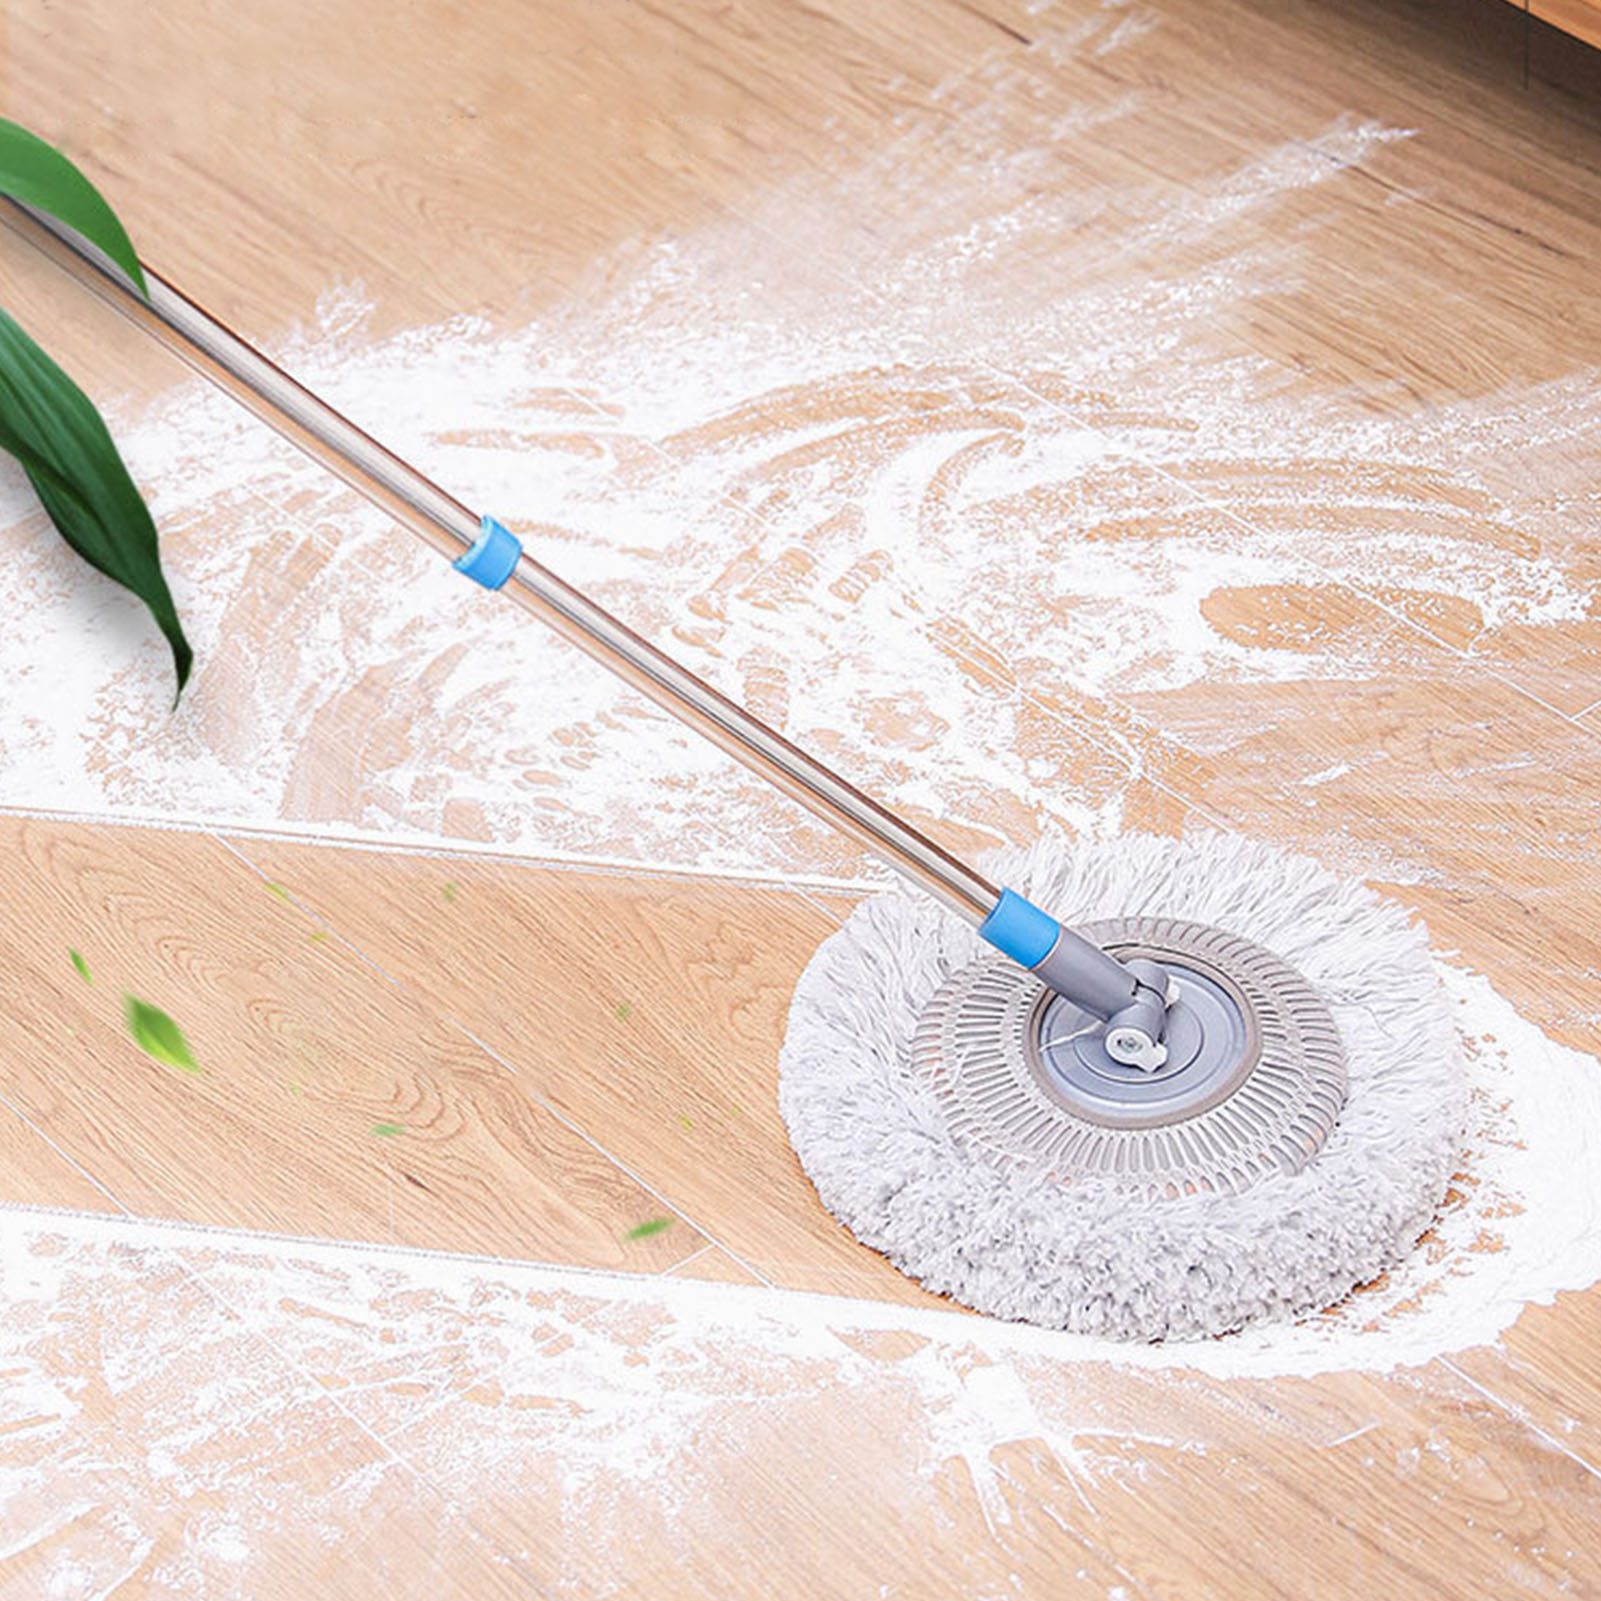 flat mop high quality aluminum alloy mop floor mop cleaning tool stainless steel rod 360 Degree Rotating Chenille Wet Mop Ceiling Flat Mop Car Window Cleaner Tool with Stainless Steel Telescopic Rod Handle